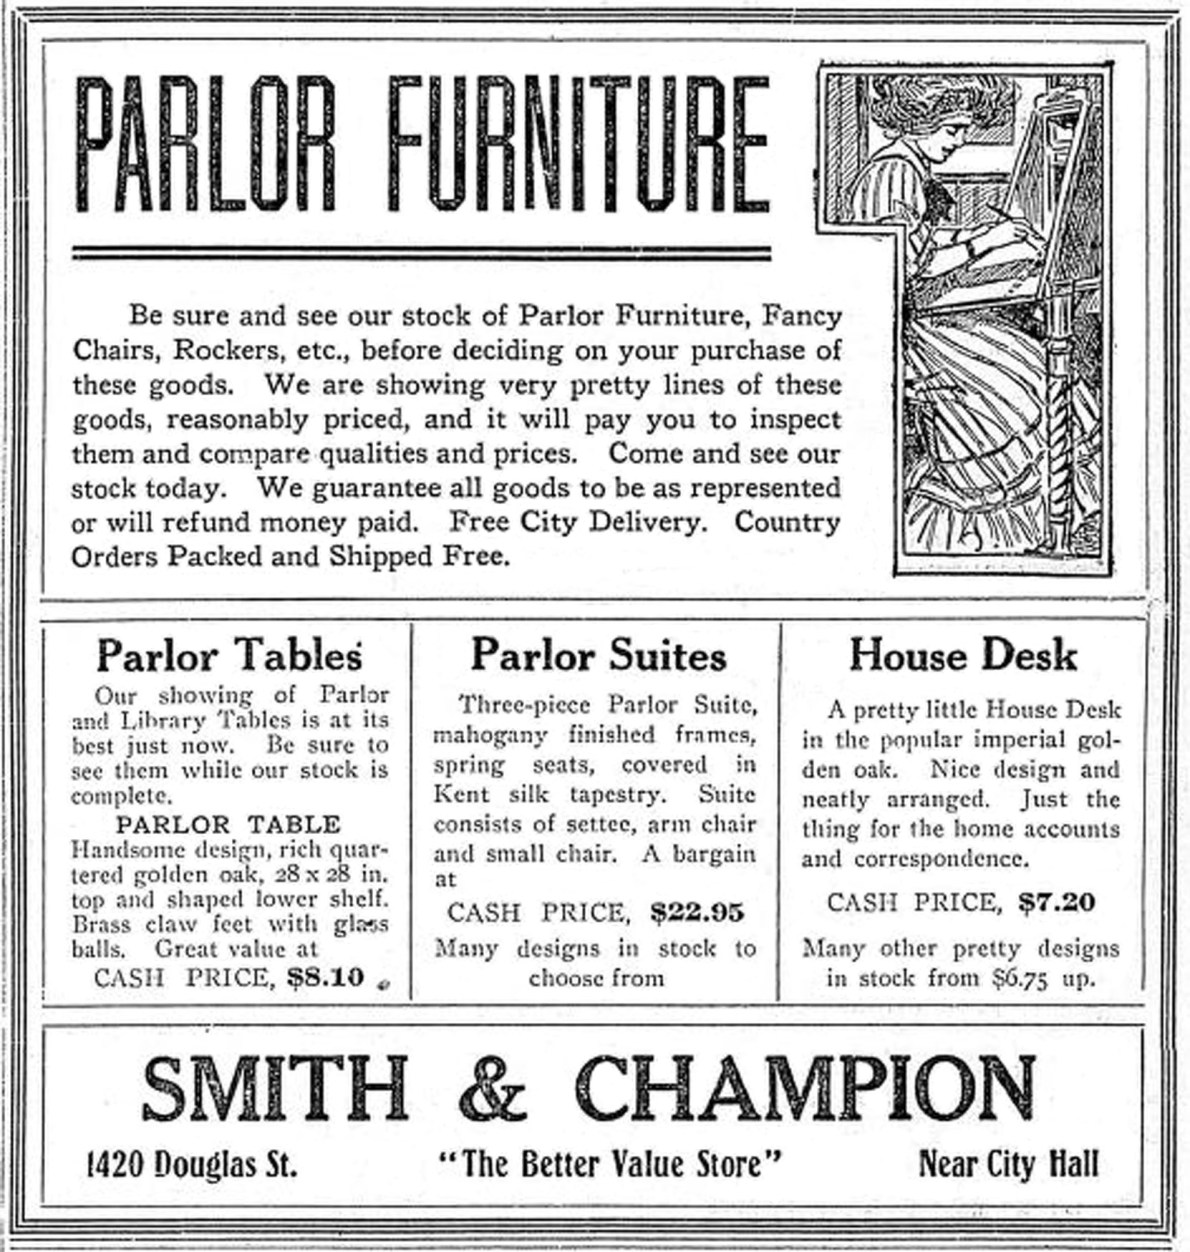 1910 advertisement for Smith & Champion, 1420 Douglas Street (Victoria Online Sightseeing Tours collection)